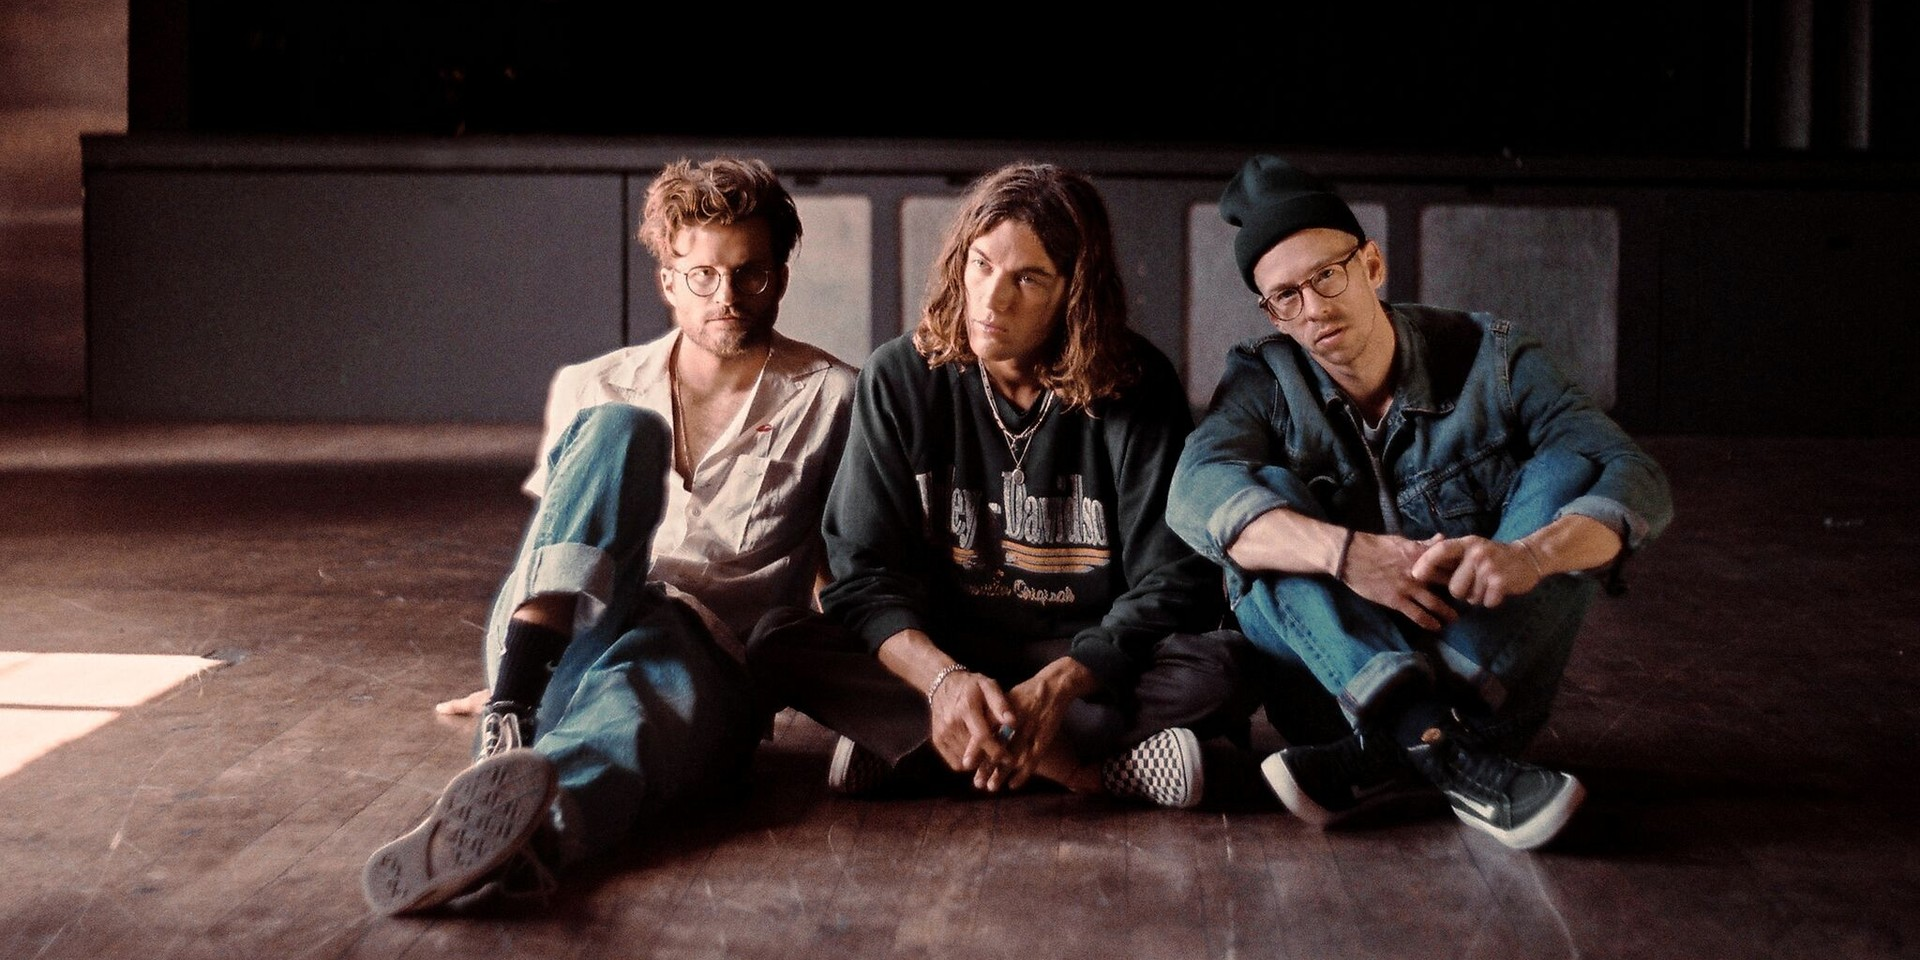 Rising indie pop trio LANY to perform in Singapore